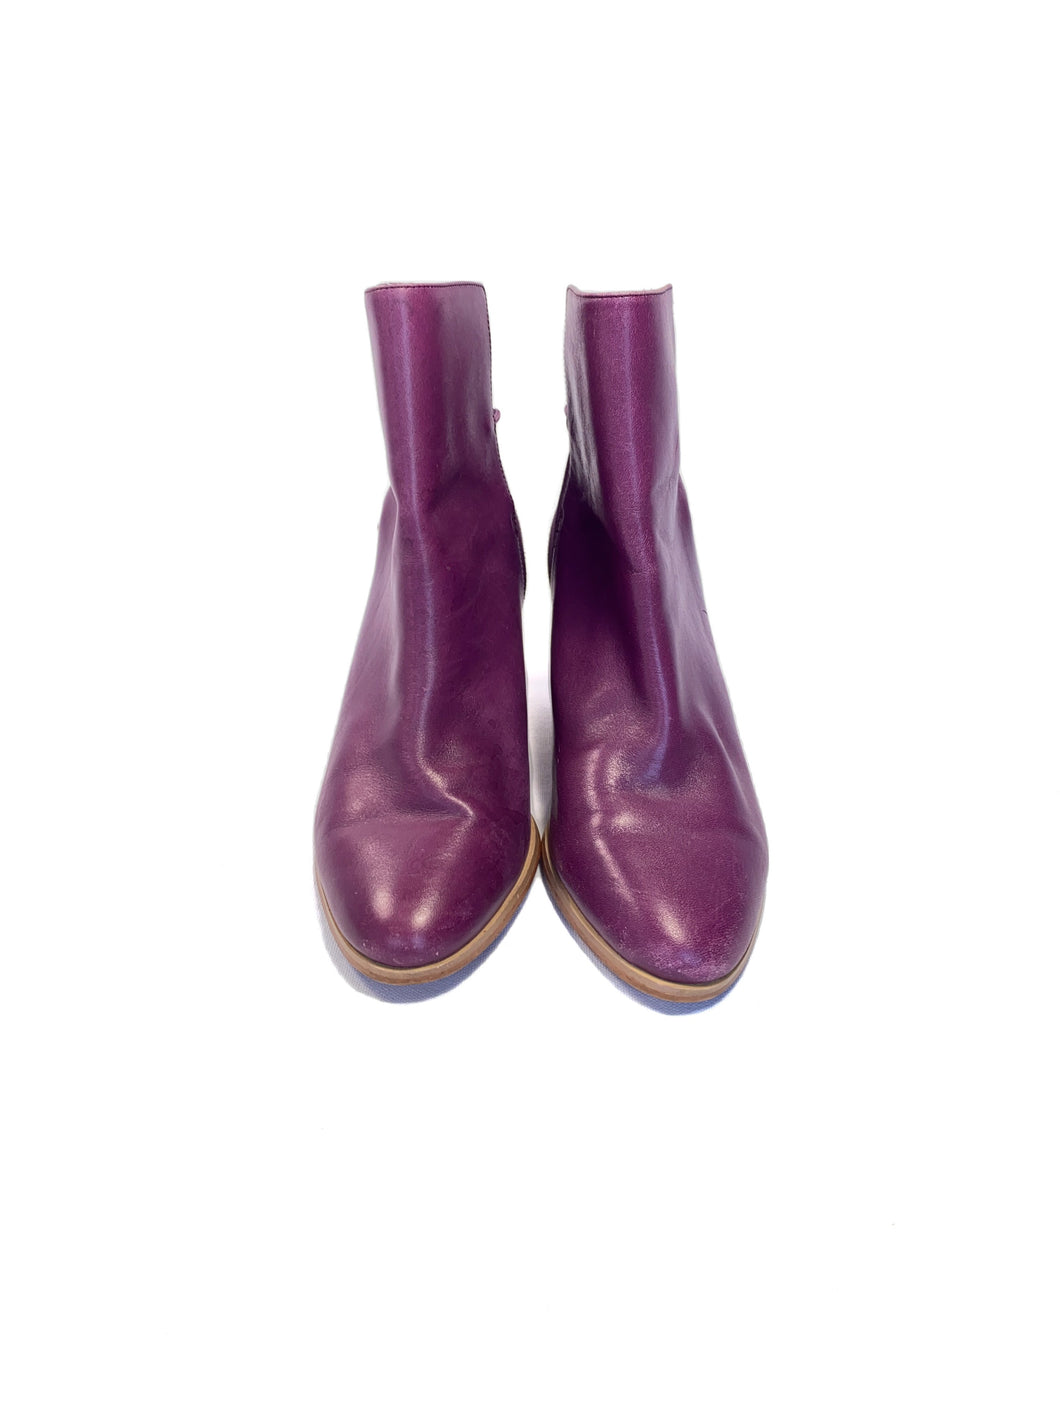 Kate Spade Saturday purple leather ankle boots size 6 - My Girlfriend's Wardrobe LLC